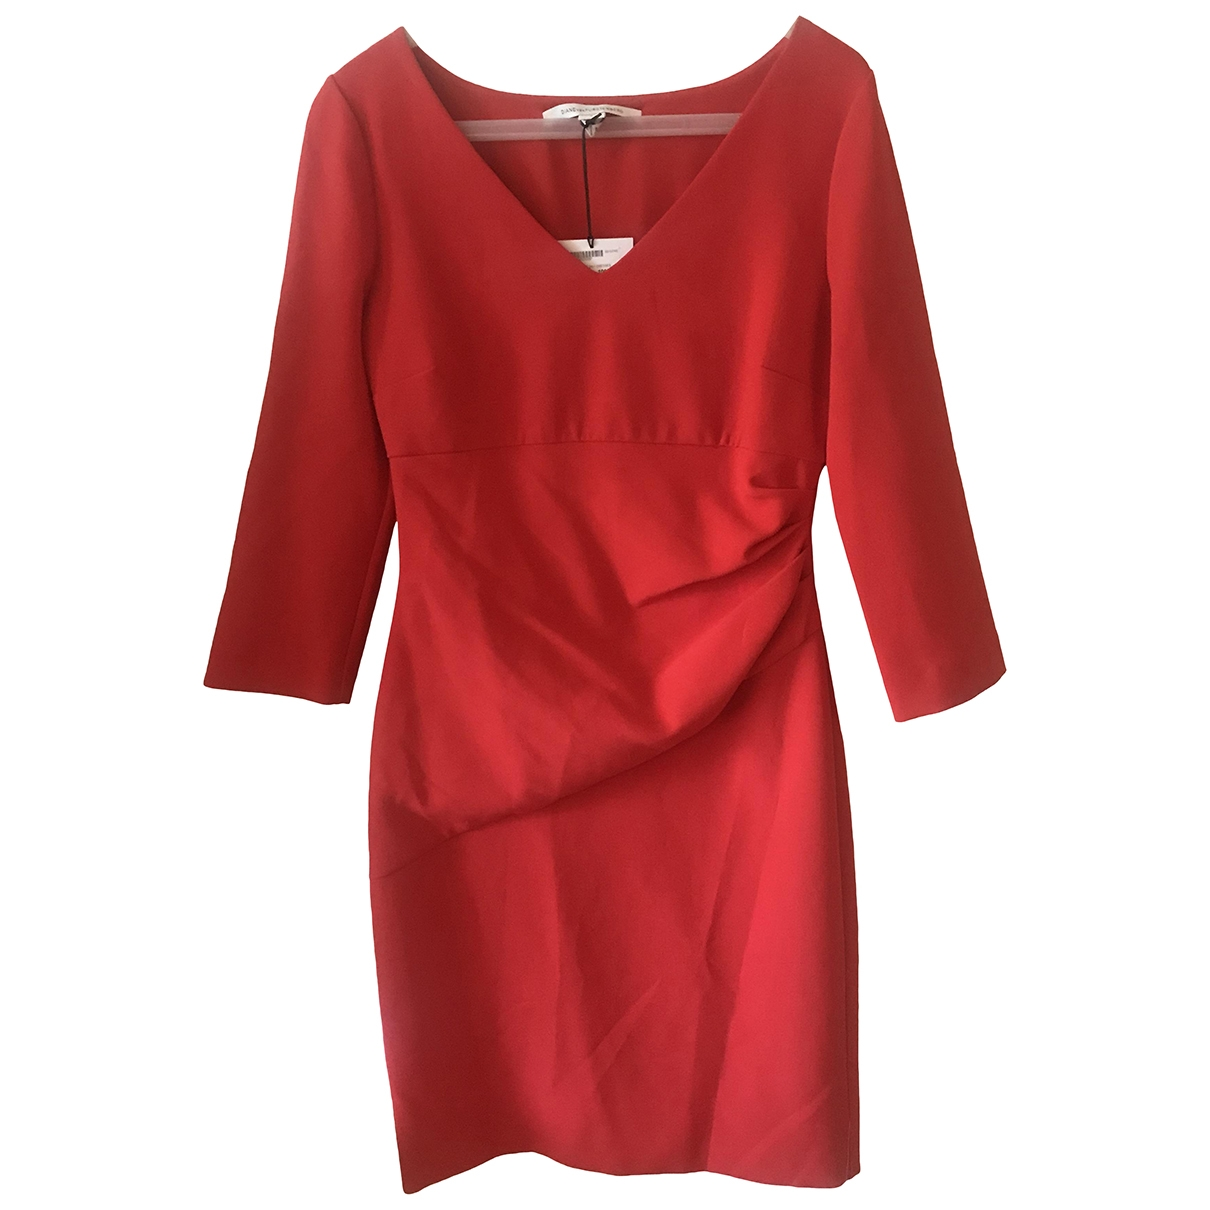 Diane Von Furstenberg \N Red dress for Women 8 US